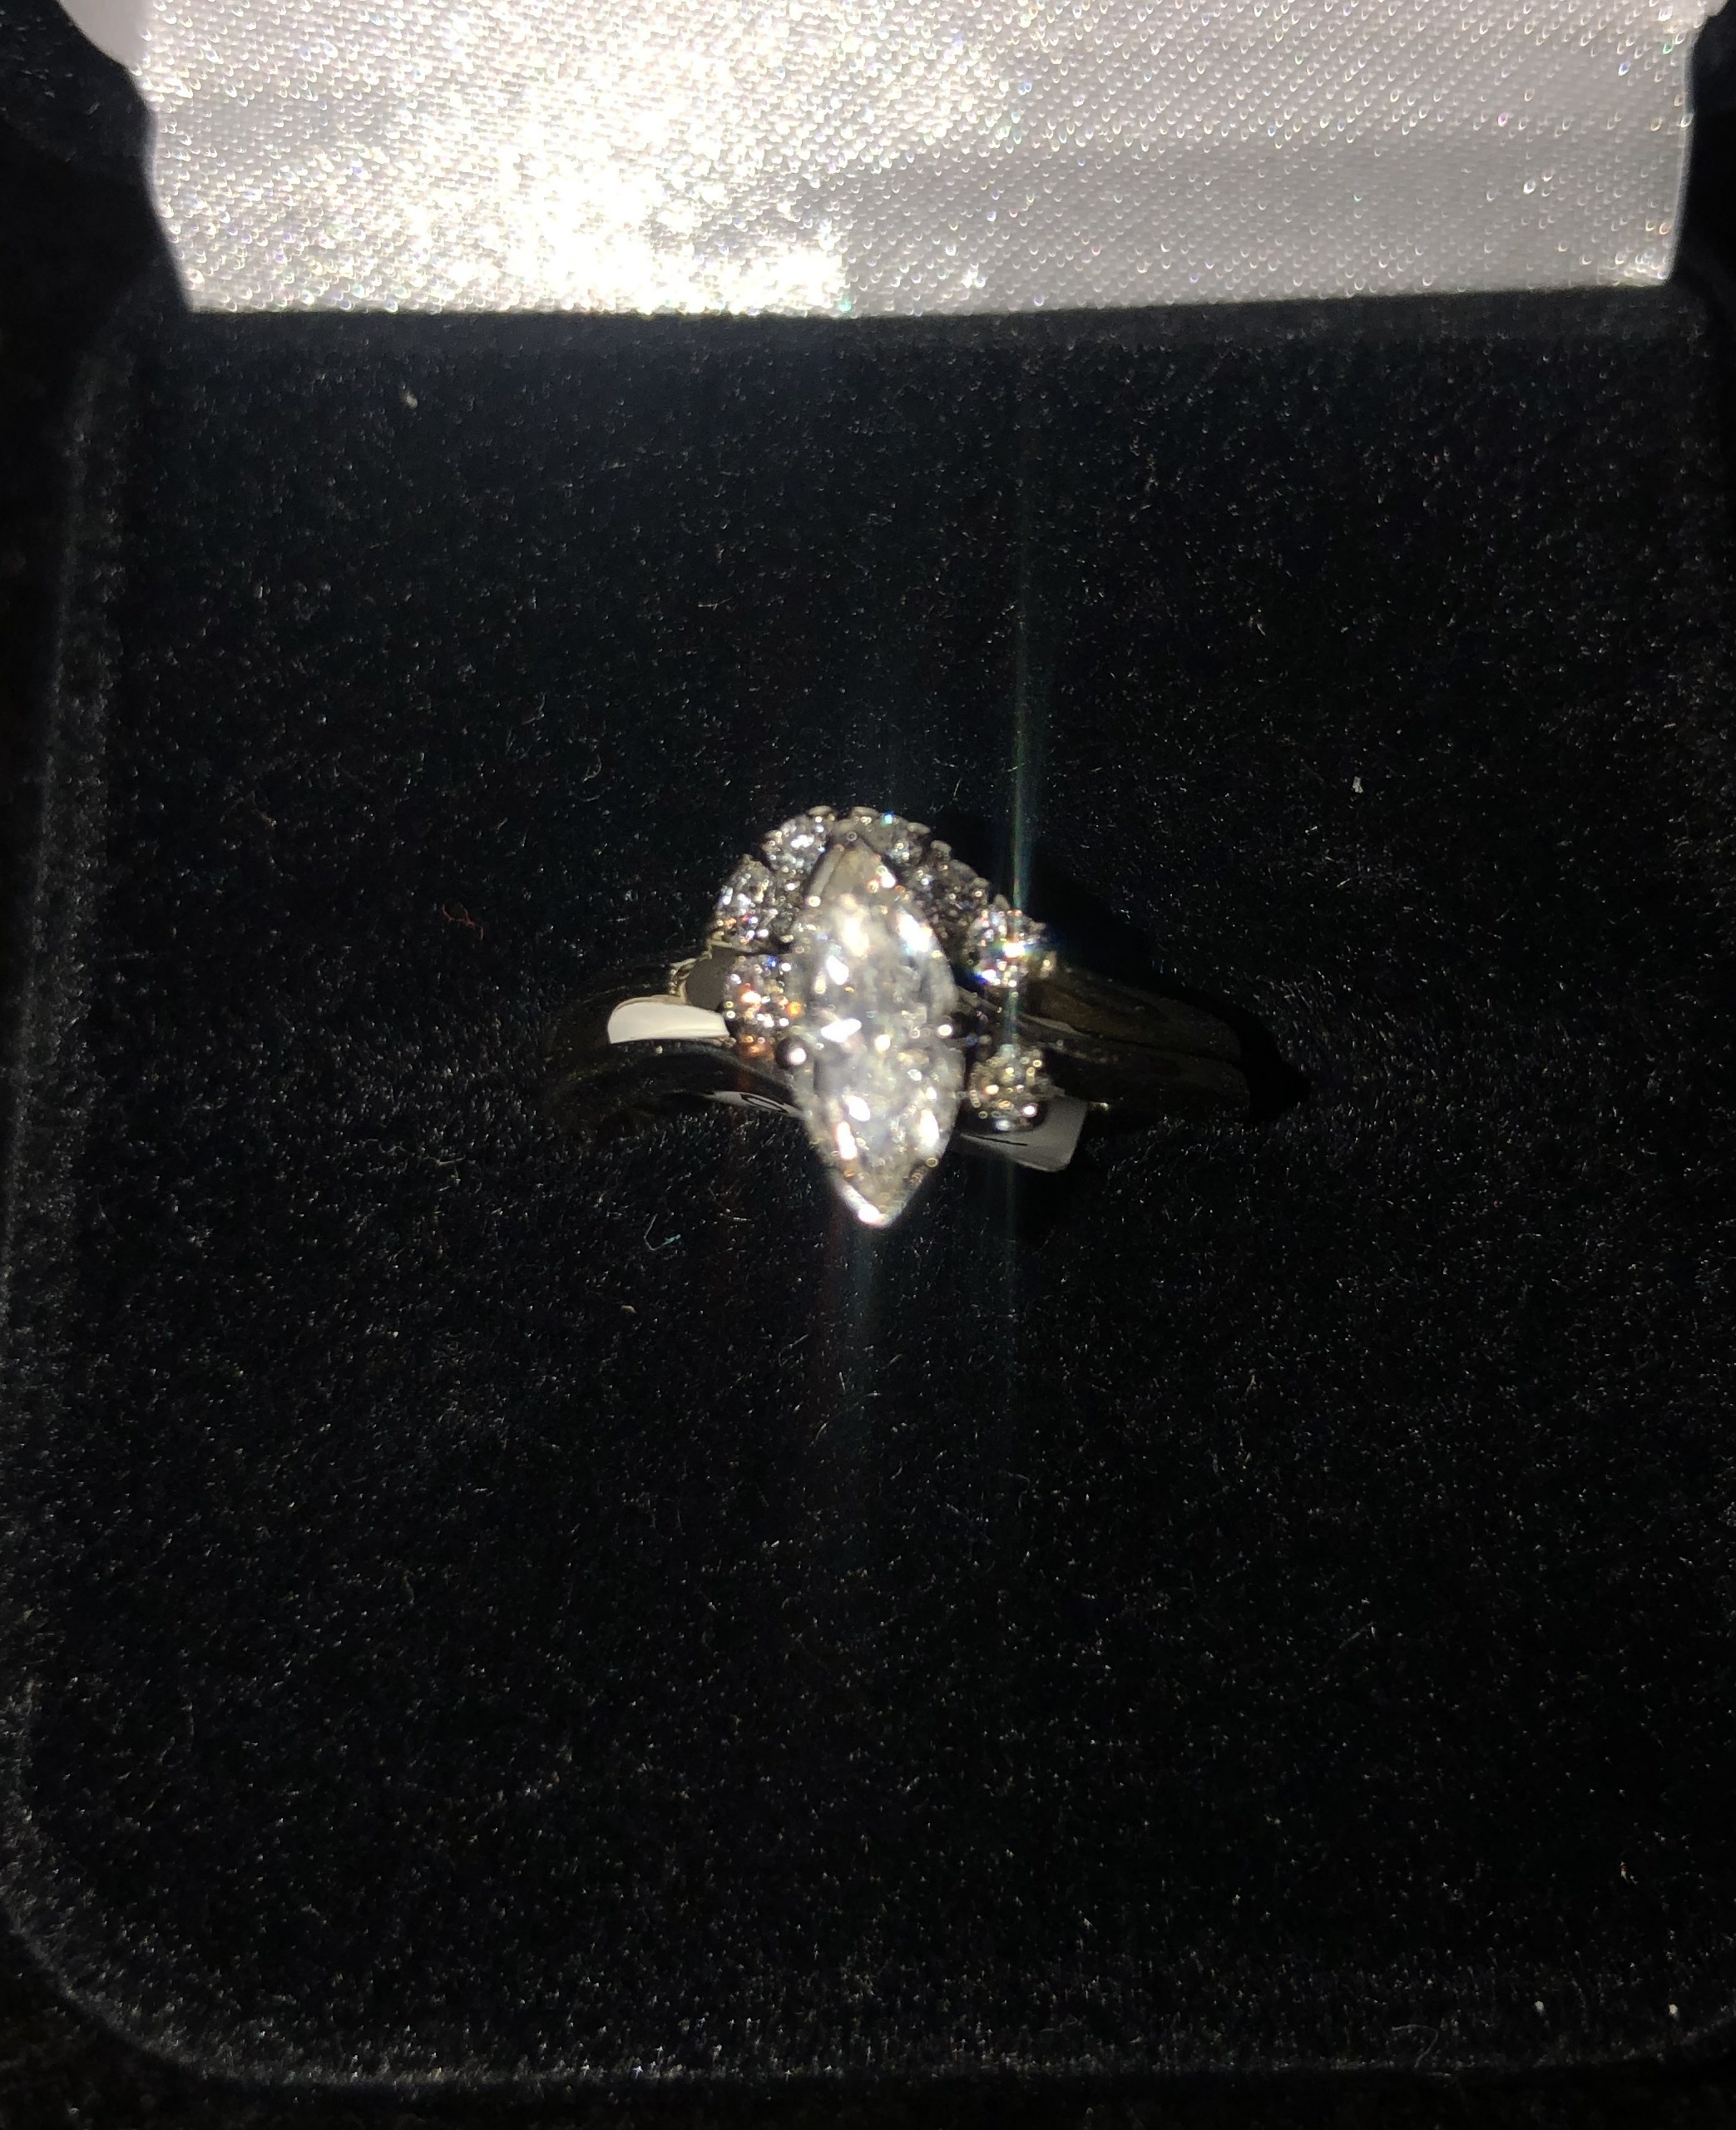 14KT WHITE GOLD APPROX .63 MARQUISE DIAMOND W/ A 5 DIAMOND INLAY WRAPPED BAND